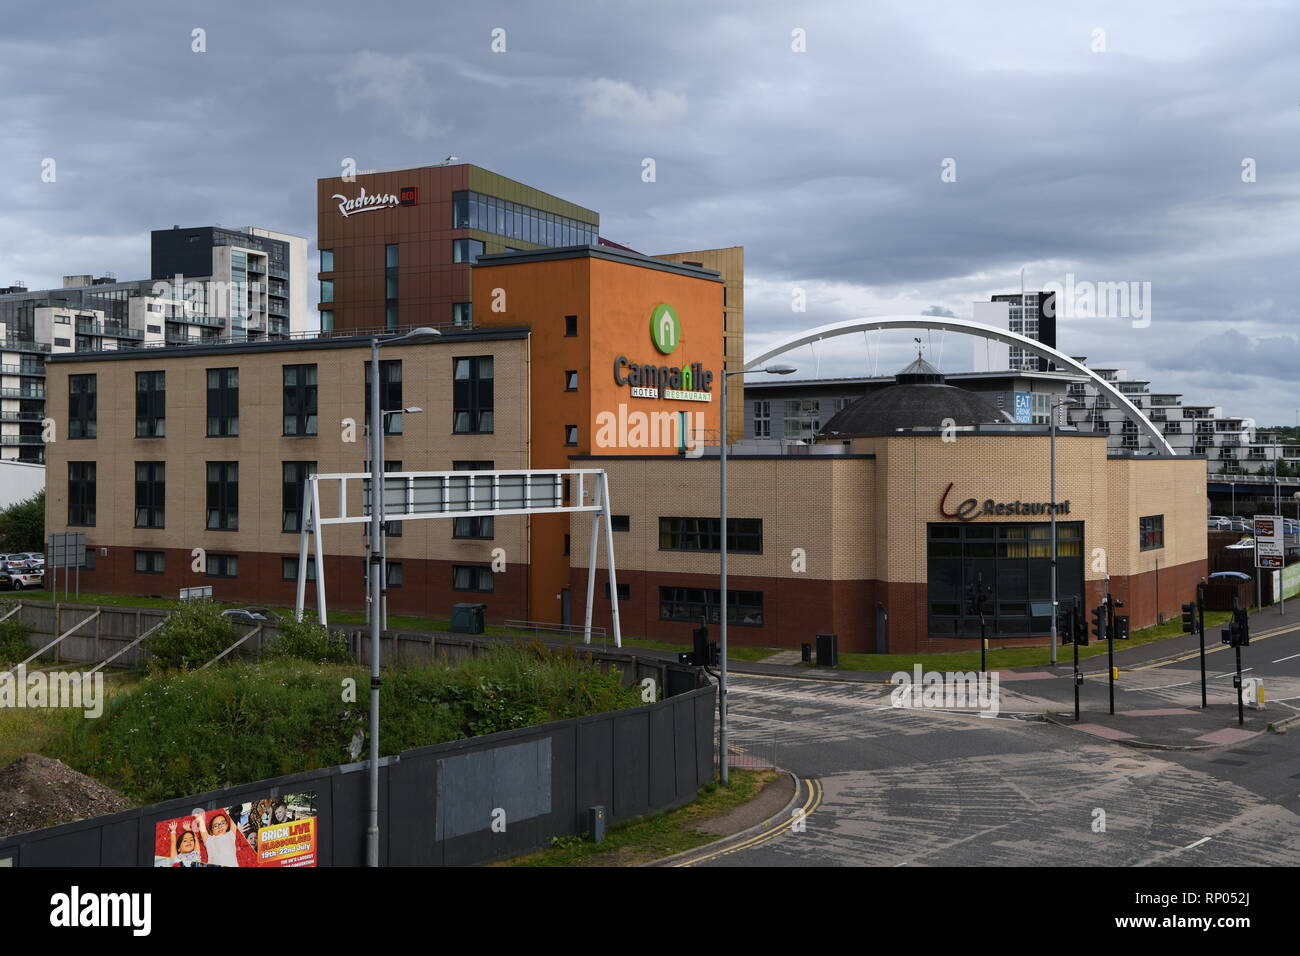 Campanile hotel and Radisson Red hotel, Glasgow Scotland UK. Situated on the River Clyde and next to the Scottish Exhibition Centre - Stock Image